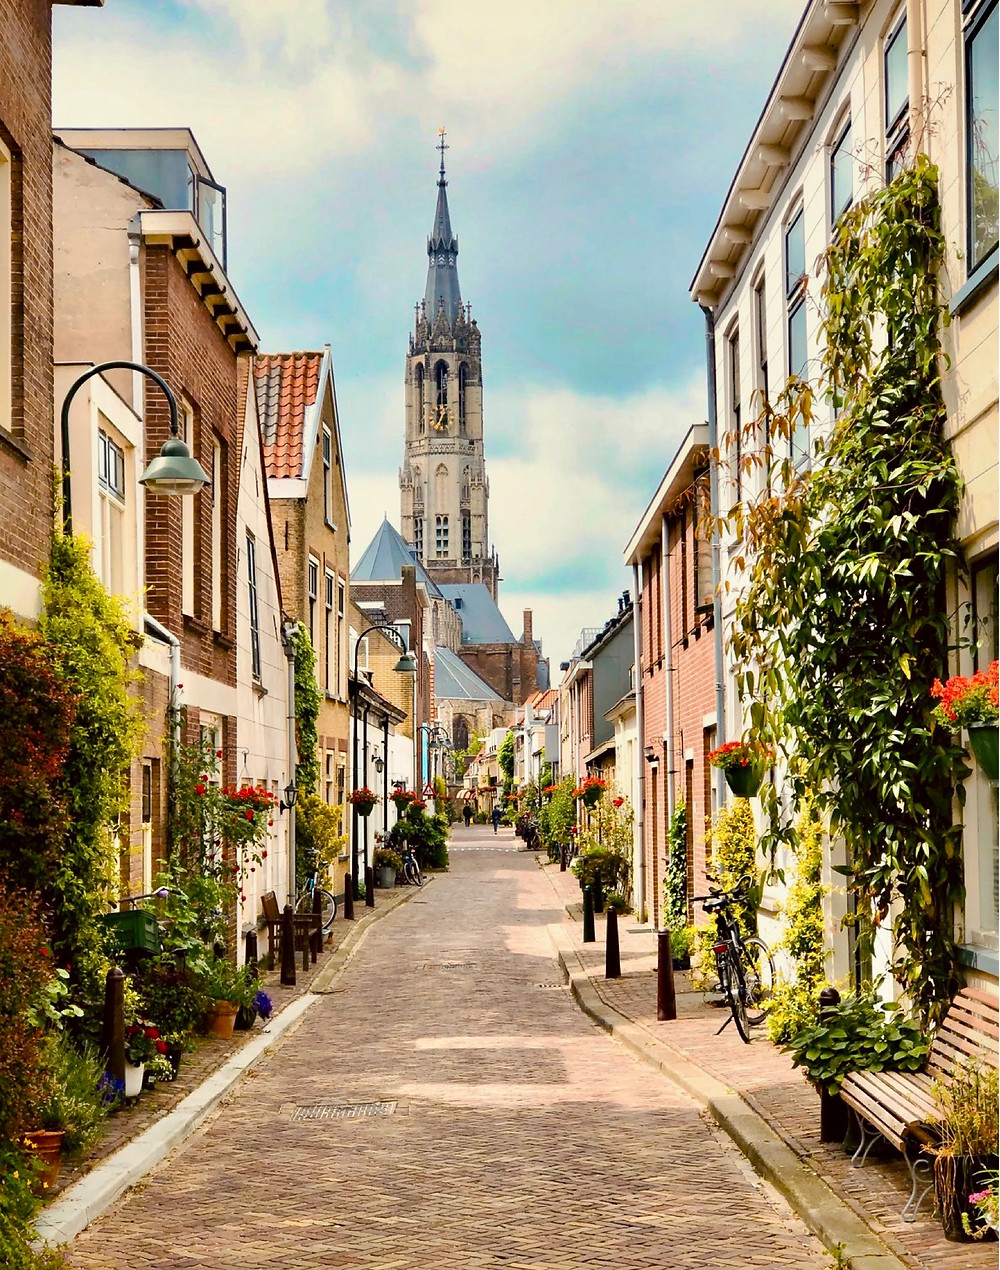 cobbled street in Delft with the New Church in the background